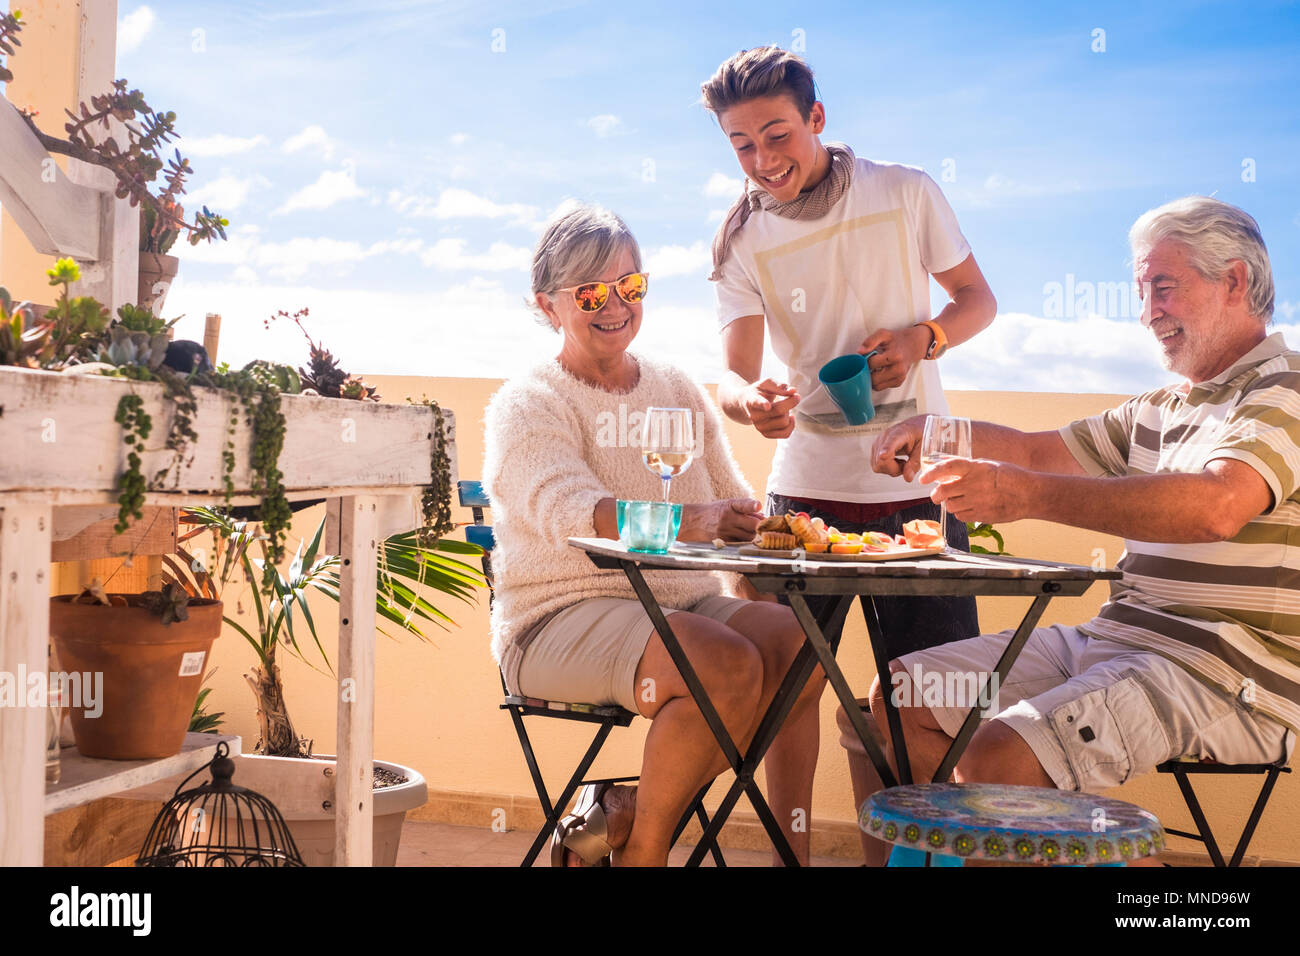 A 70-year-old senior and a 14-year-old boy can enjoy the sunny day outdoors on a terrace with food and drink. The blue sky is the background. - Stock Image